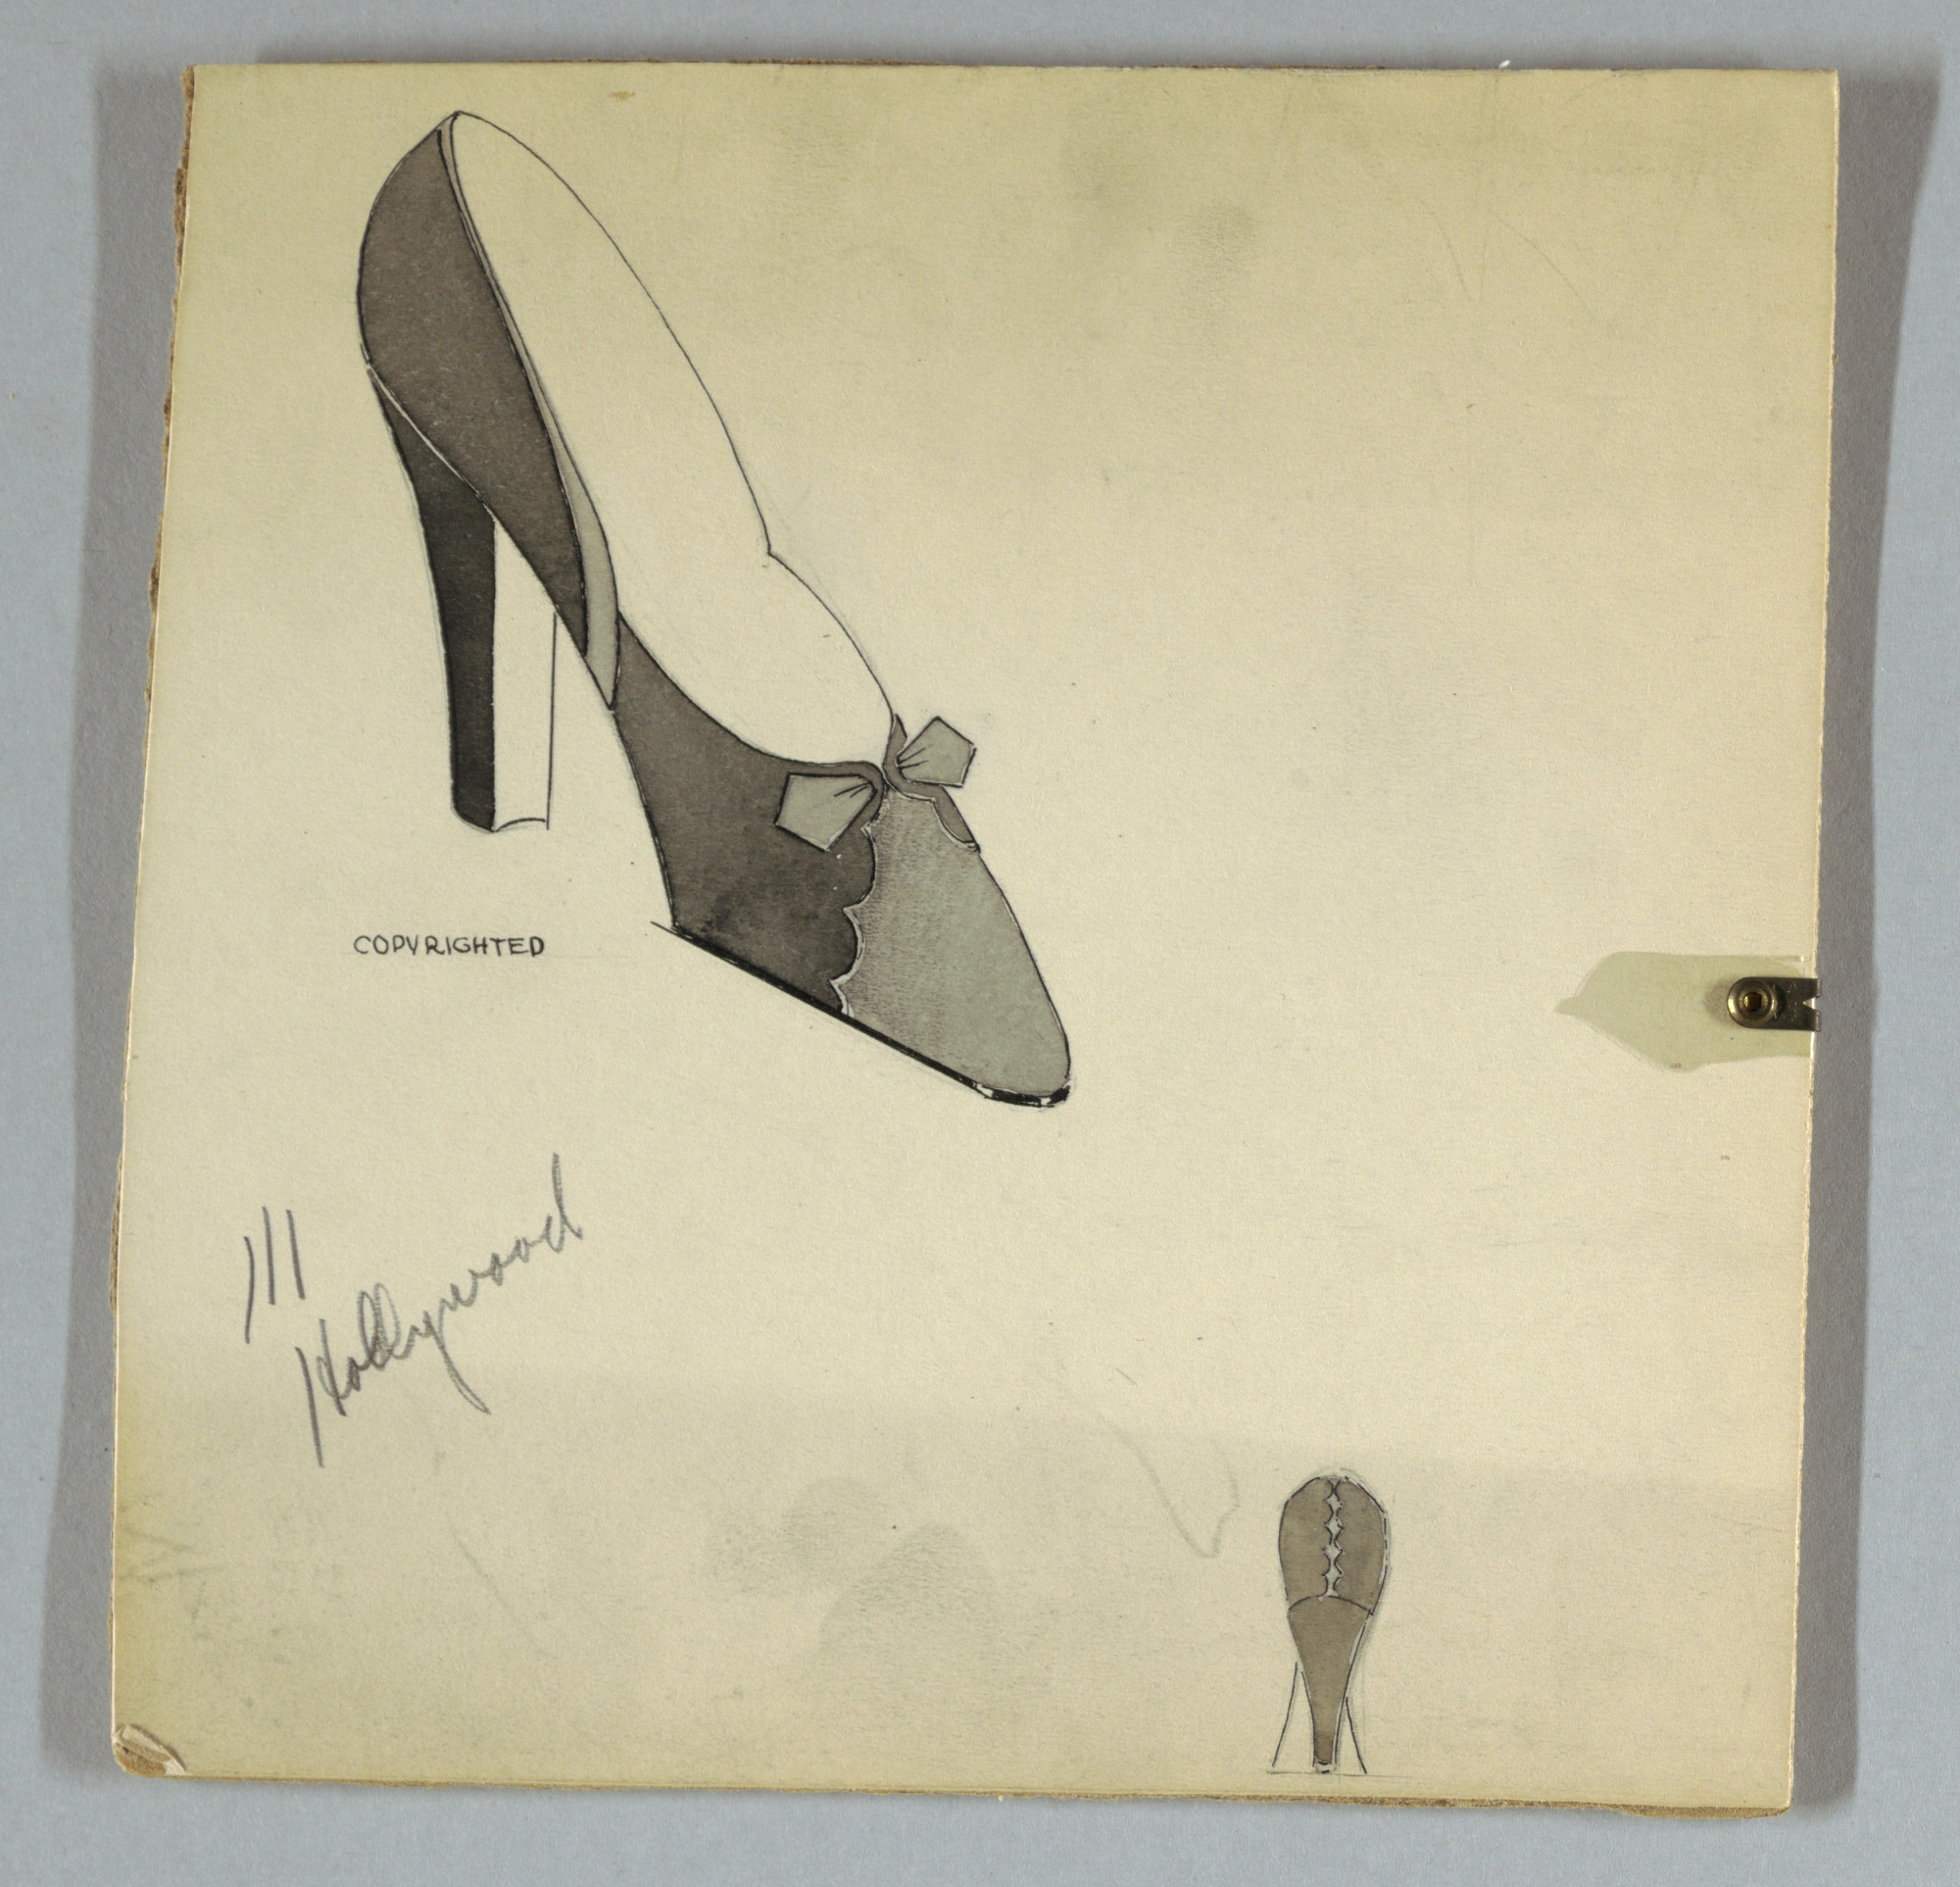 images for Design for a Shoe, for Delman Shoe Company, New York City